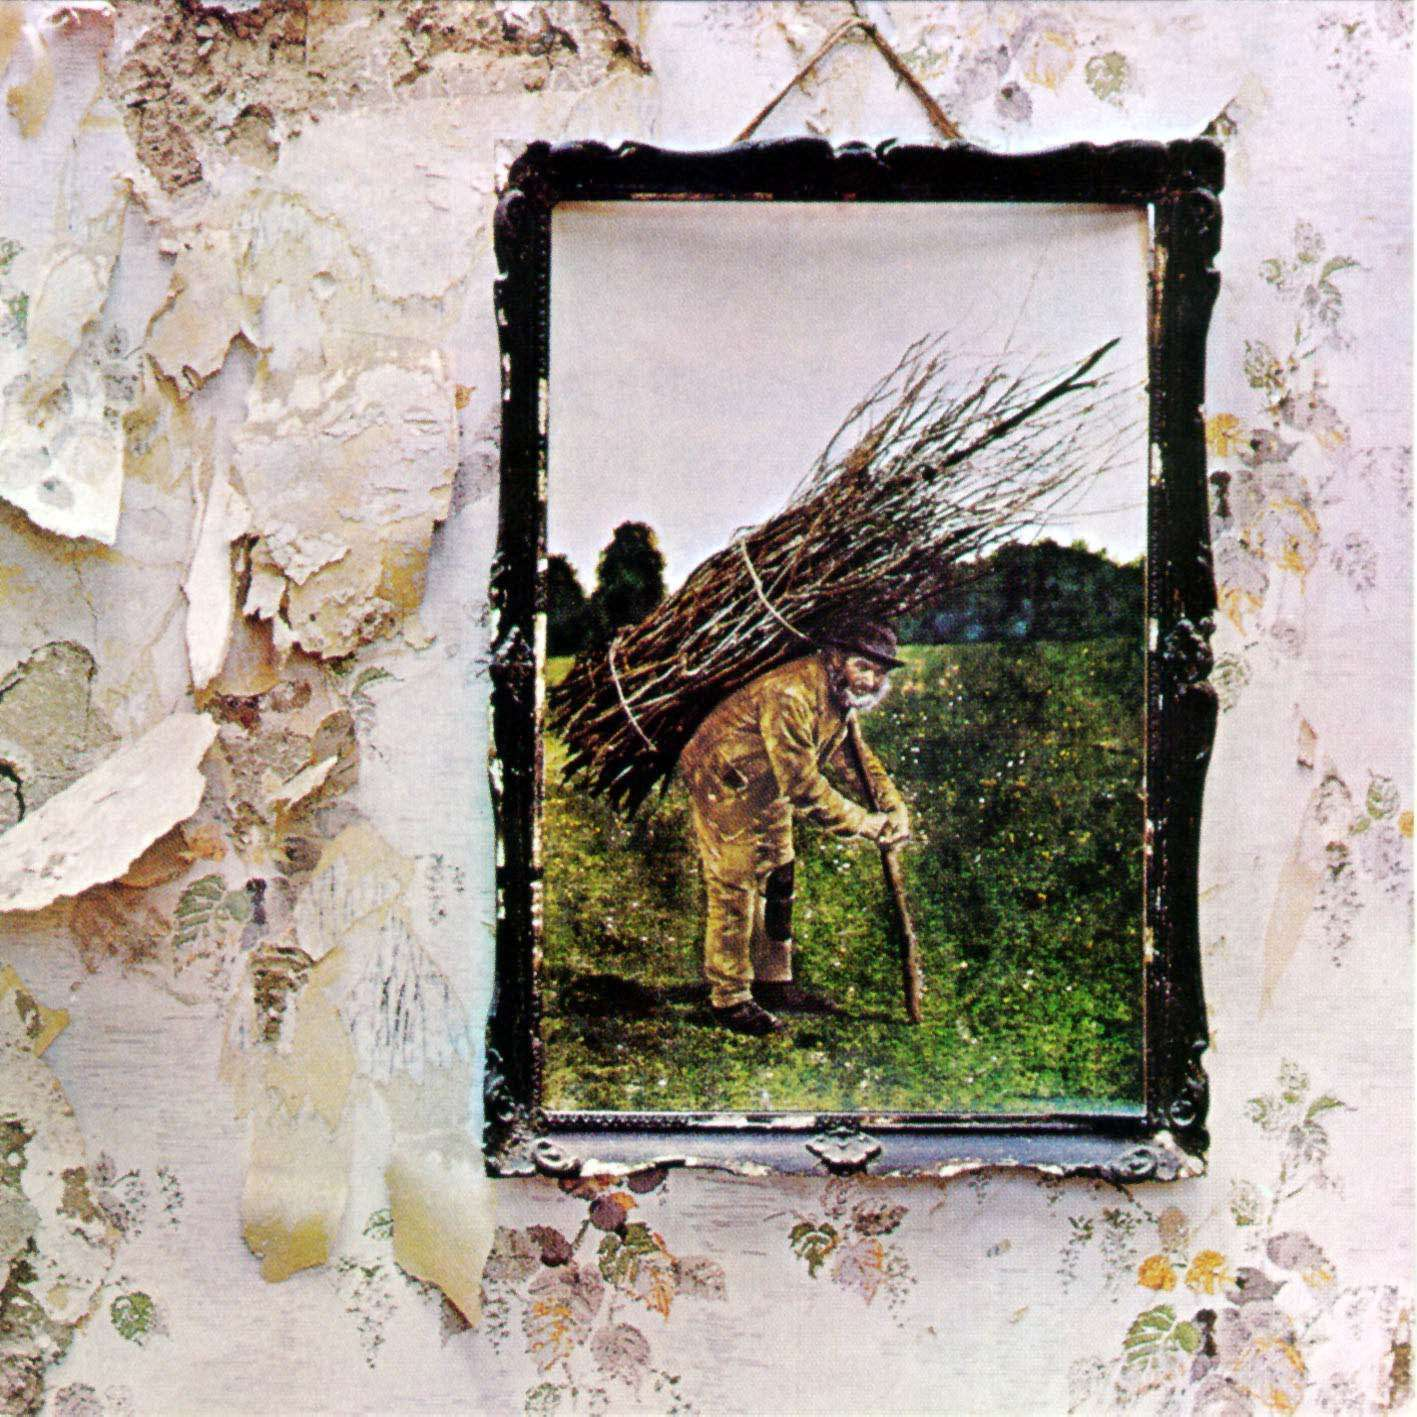 led Zeppelin iv front HD Wallpaper